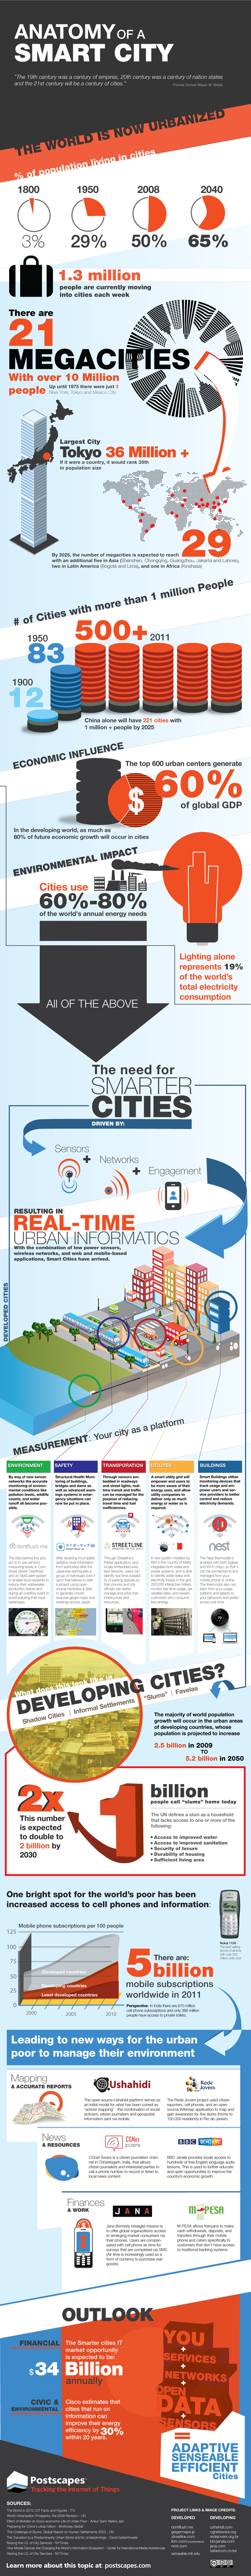 Understanding Smart Cities